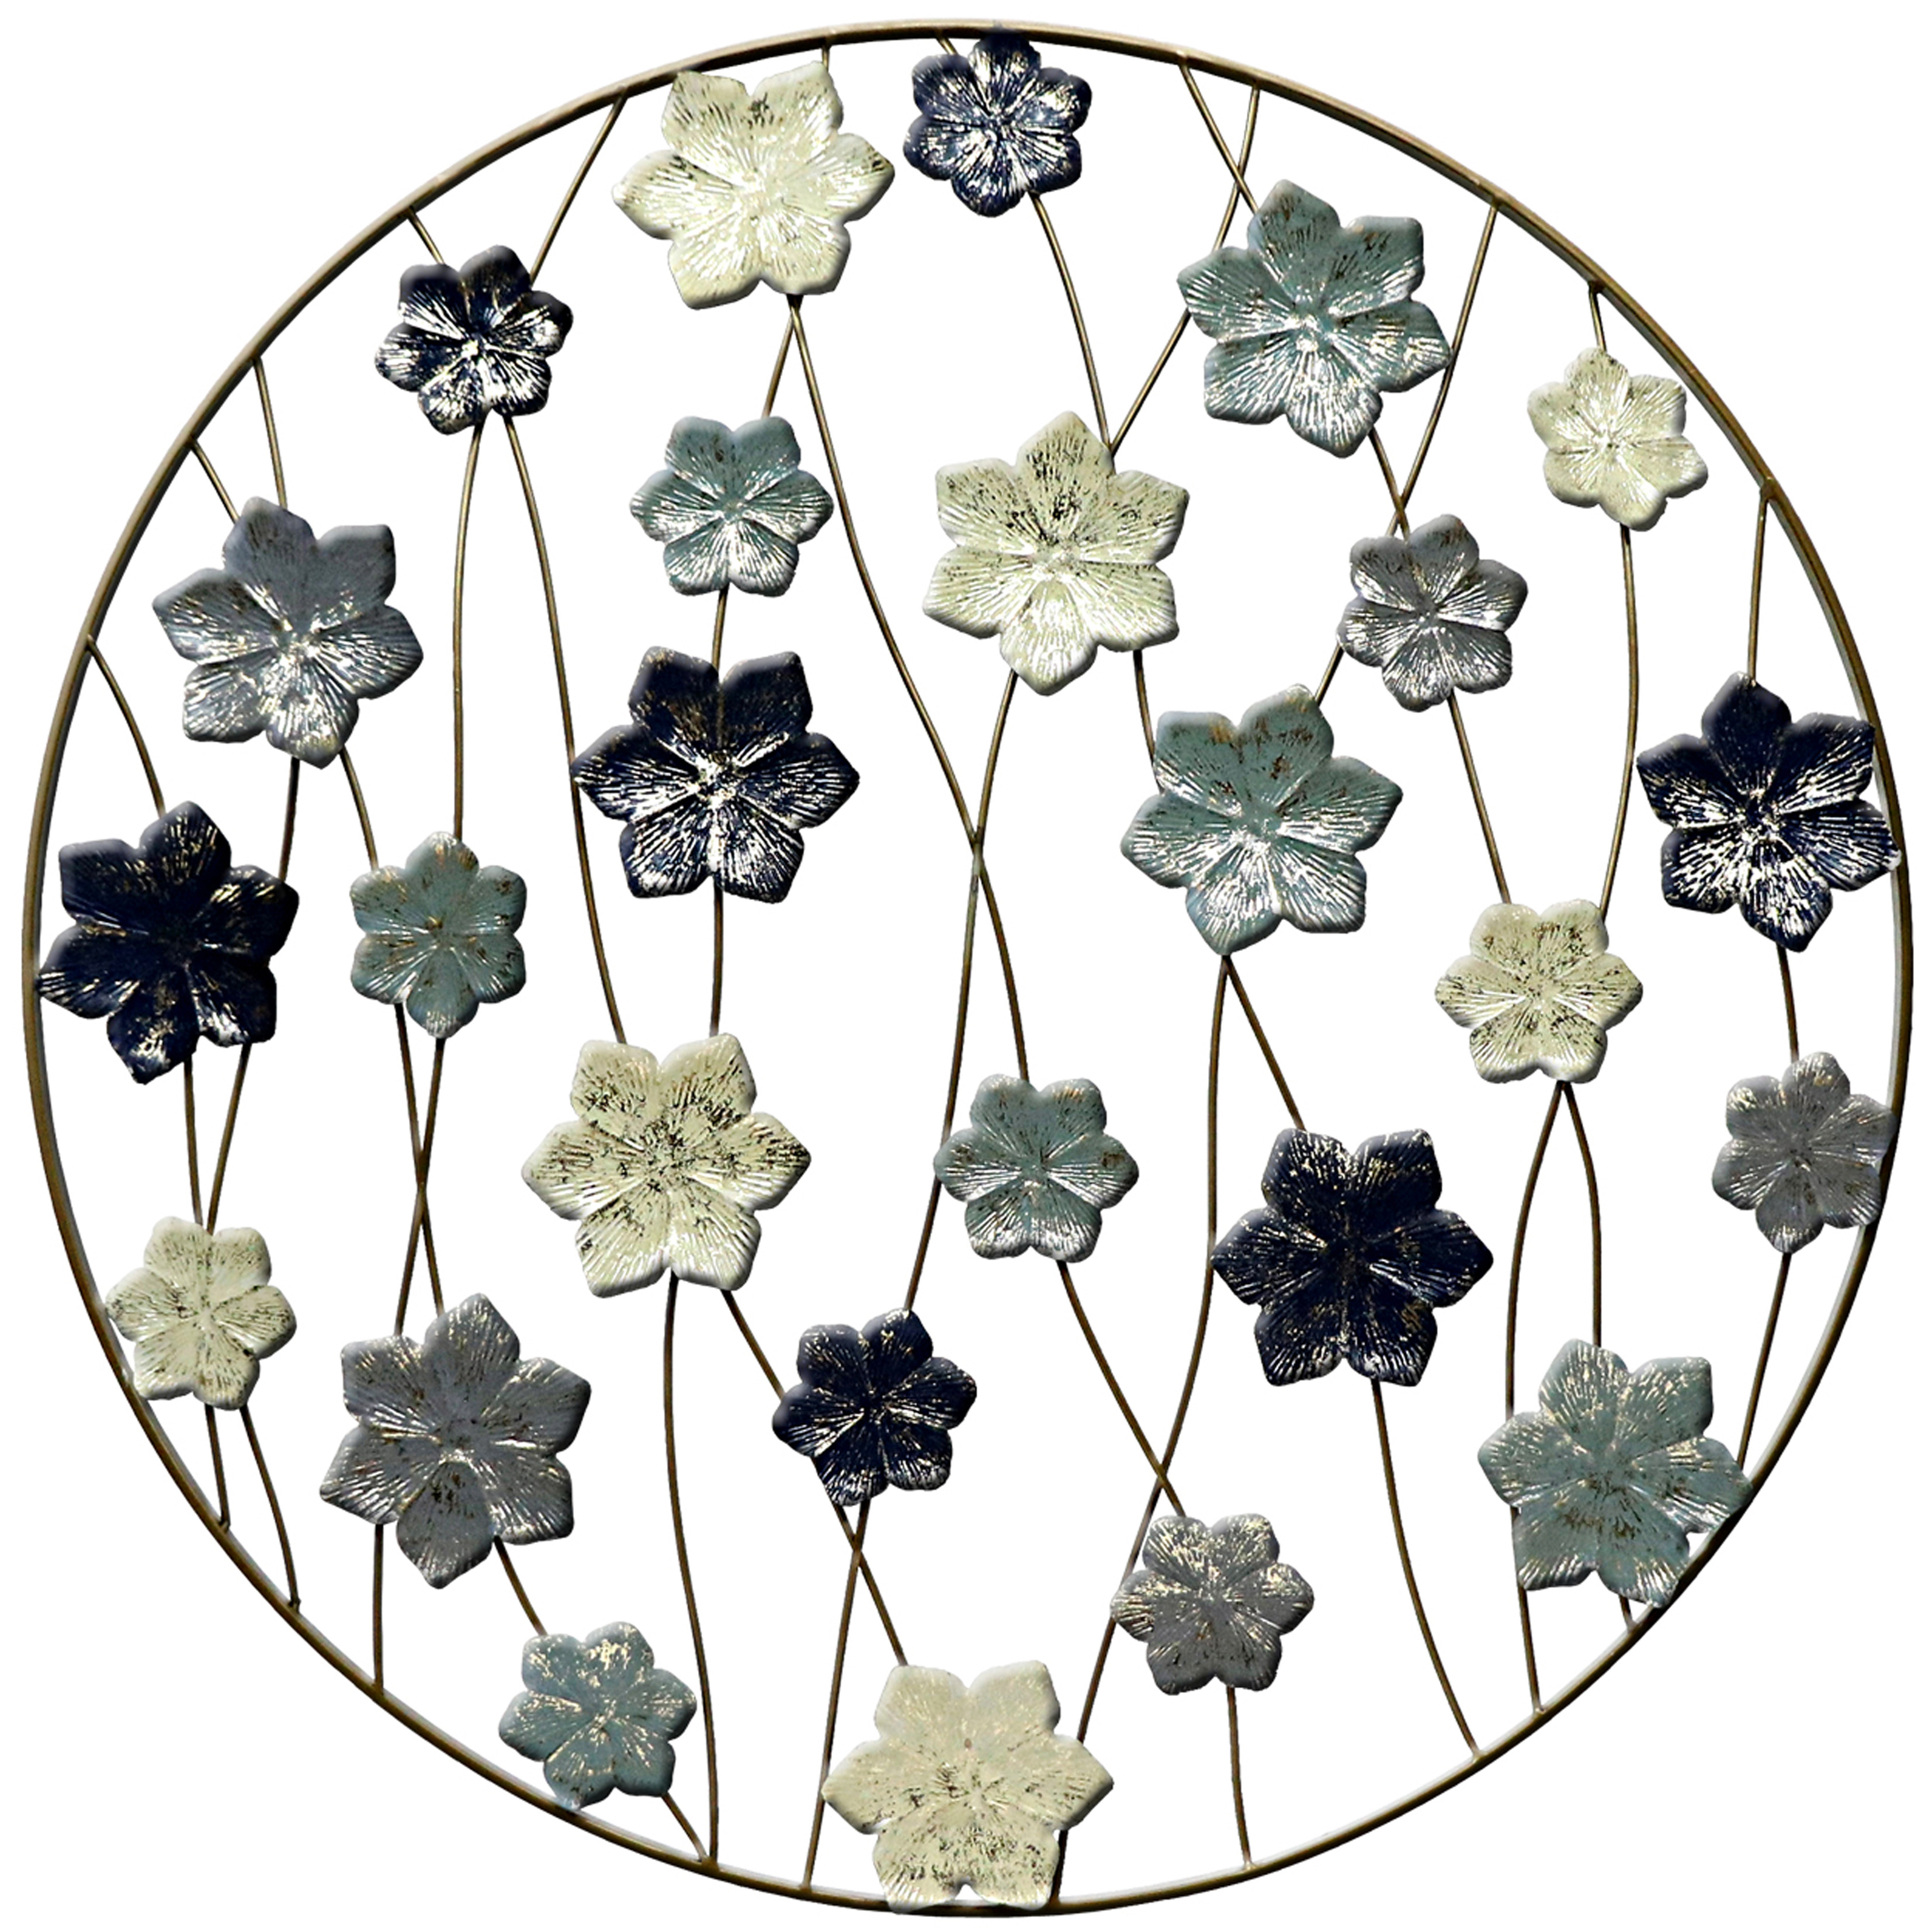 Metal Wall Art Uk | Page 1 pertaining to Flower Urban Design Metal Wall Decor (Image 21 of 30)